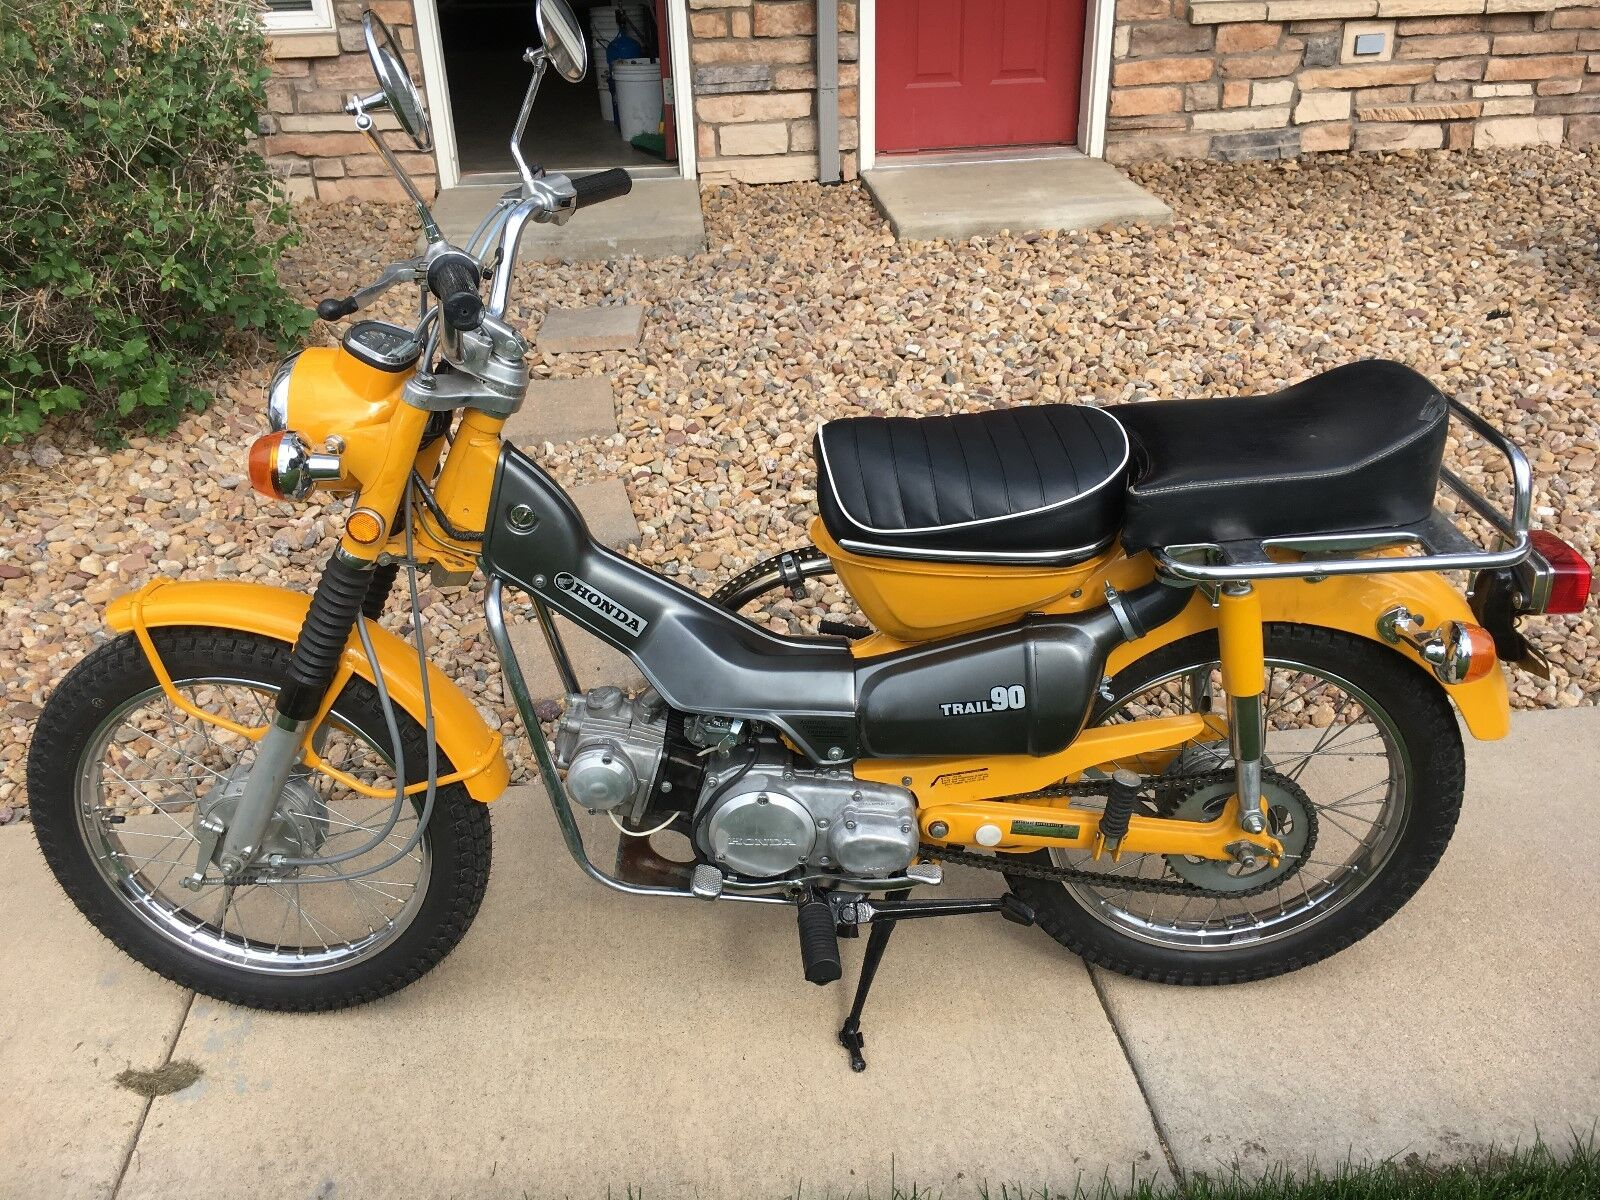 1970 honda ct90 used honda ct for sale in littleton for Honda in ct